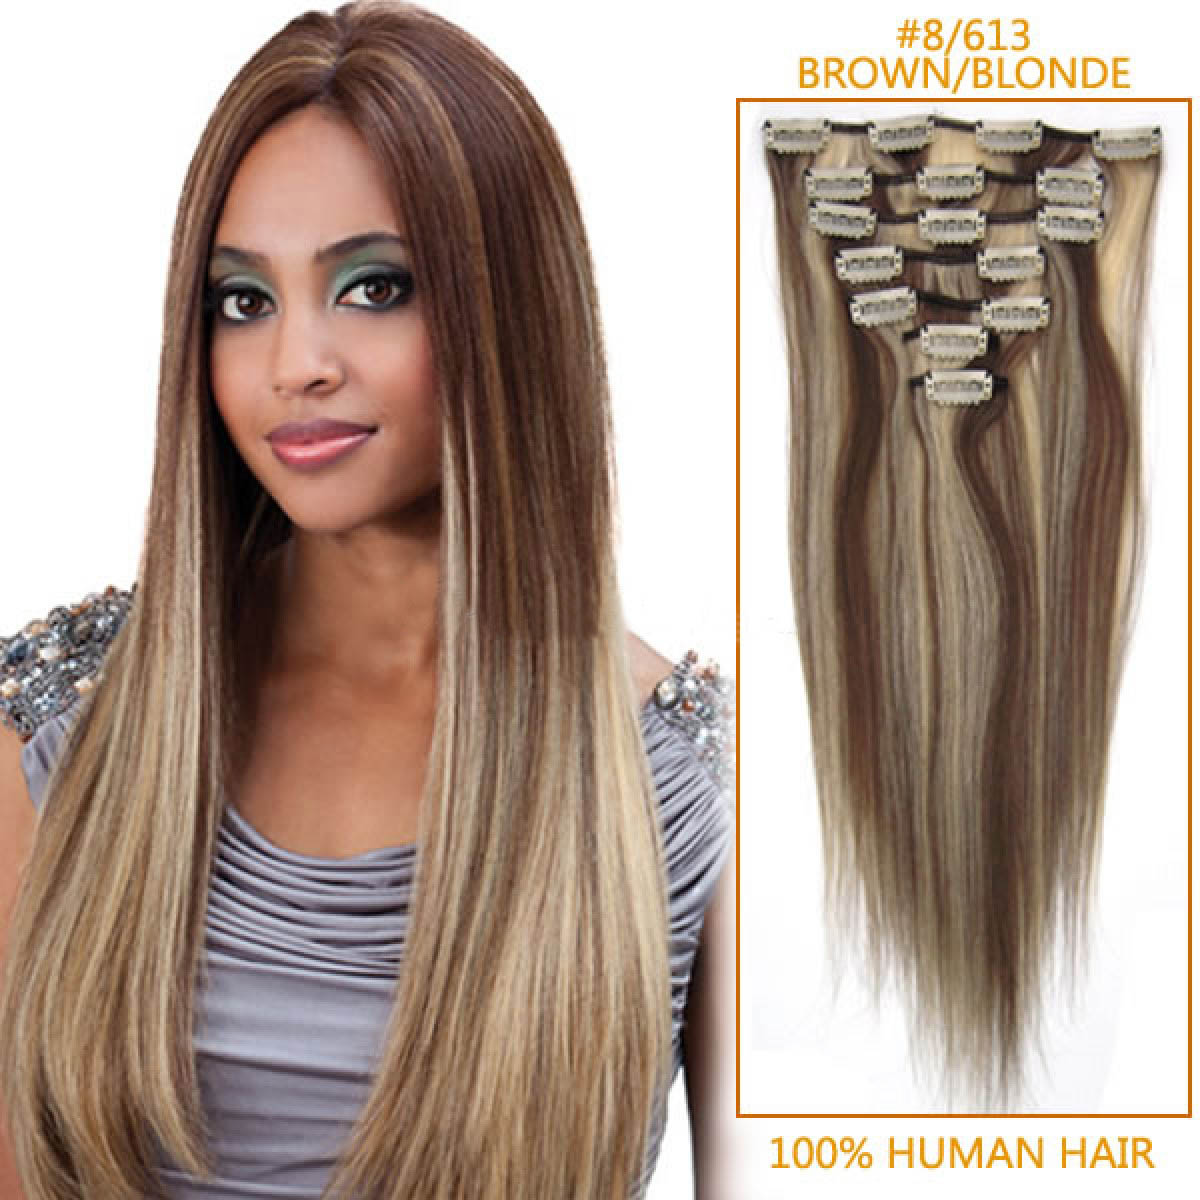 Inch 8613 brownblonde clip in remy human hair extensions 9pcs 30 inch 8613 brownblonde clip in remy human hair extensions 9pcs pmusecretfo Choice Image